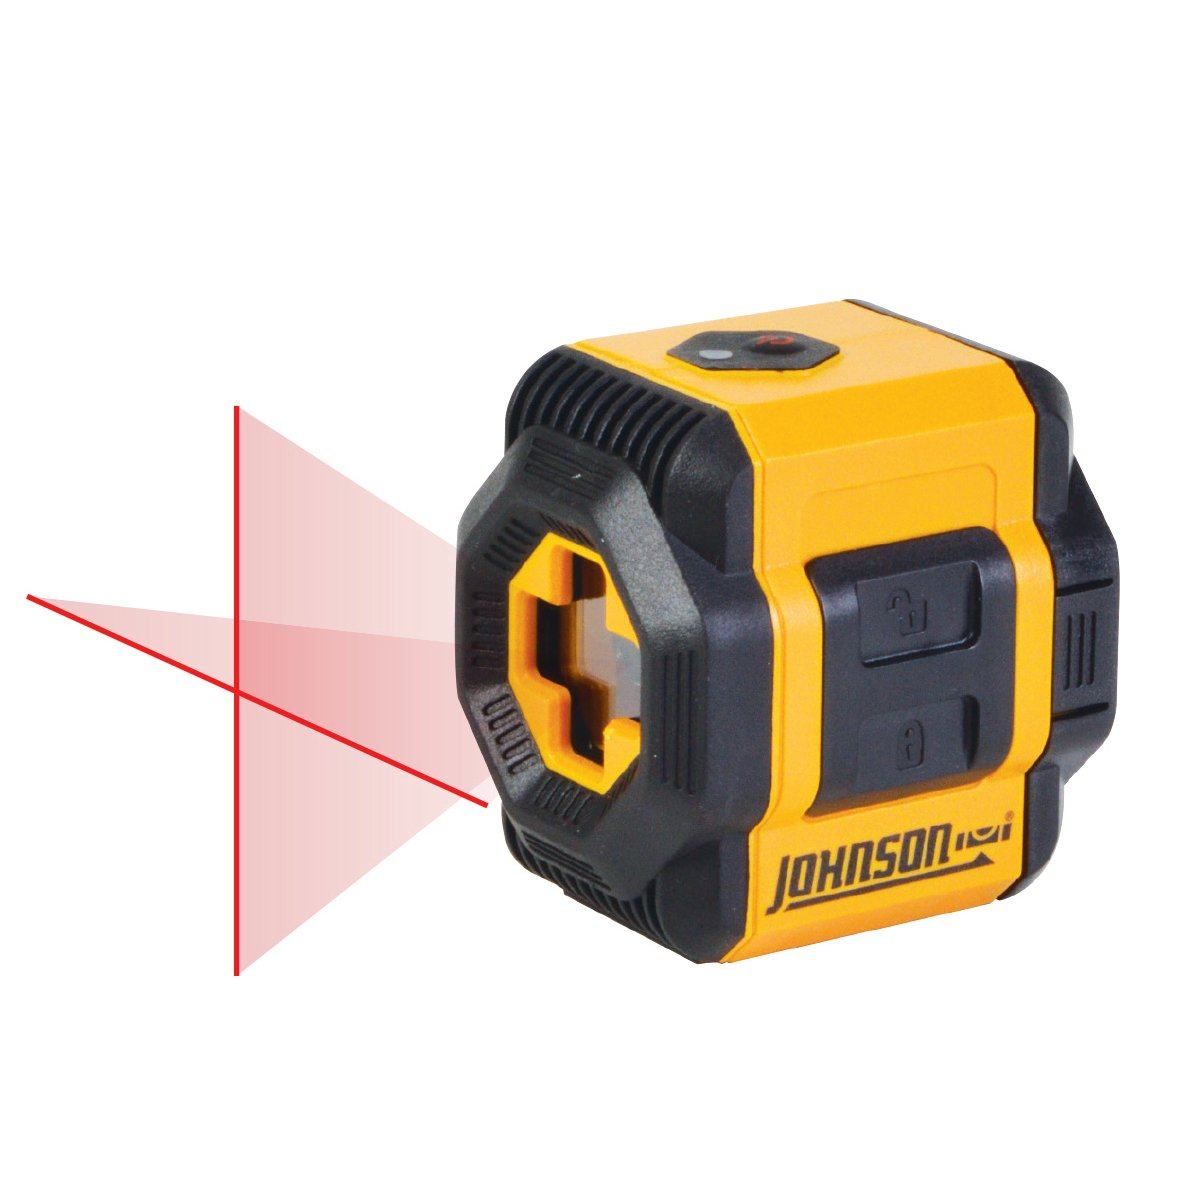 Johnson Level & Tool 40-6603 Self-Leveling Cross-Line Laser Level with Plumb and Level Layout Lines by Johnson Level & Tool (Image #2)